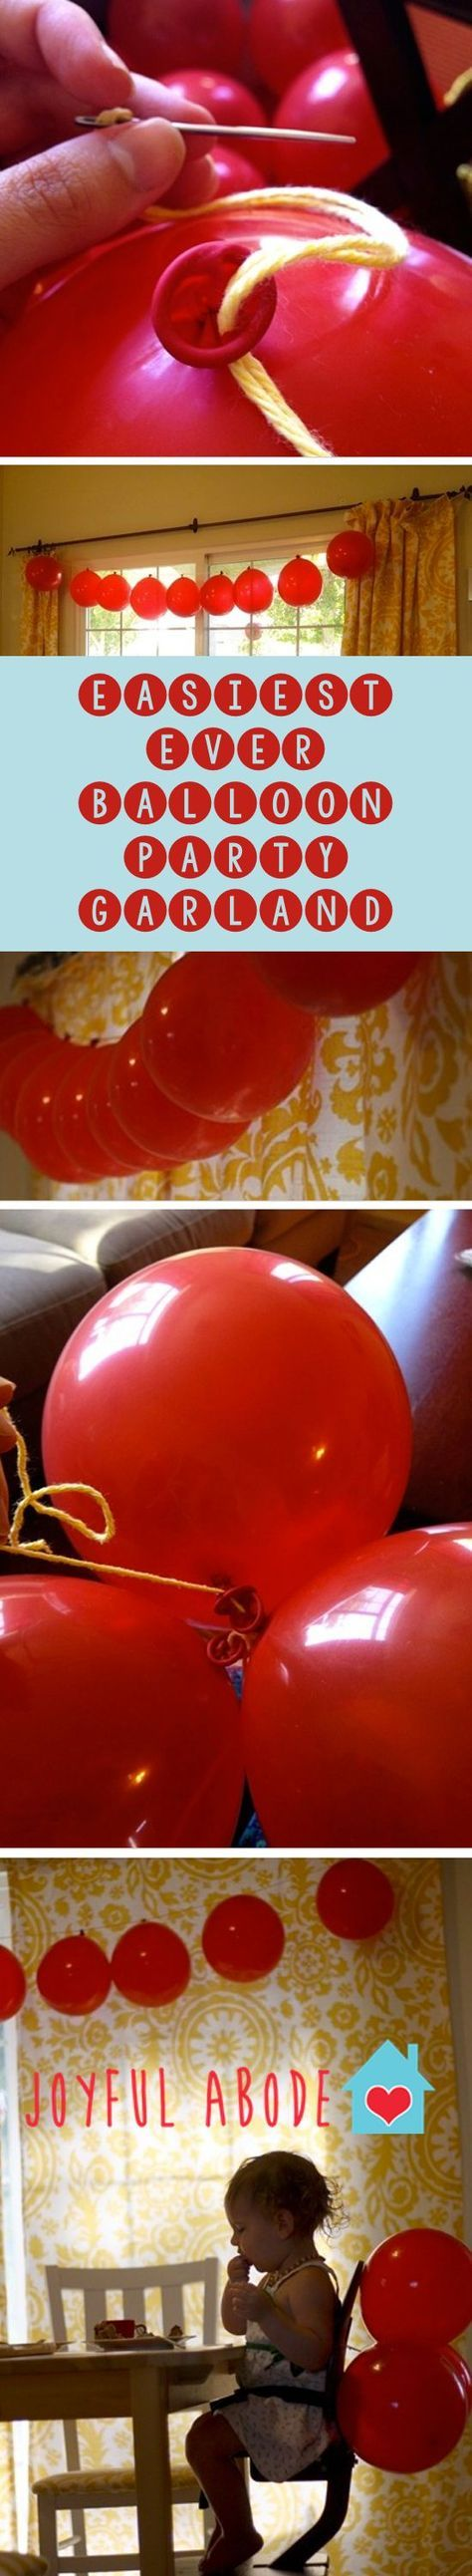 easiest EVER balloon party garland. Make garlands to hang or bunches to decorate with. | DIY party decor | DIY balloon decorations | balloon decor ideas | how to decorate with balloons | how to decorate for a party | homemade party decor | DIY balloon garland | easy party decor ideas || Joyful Abode